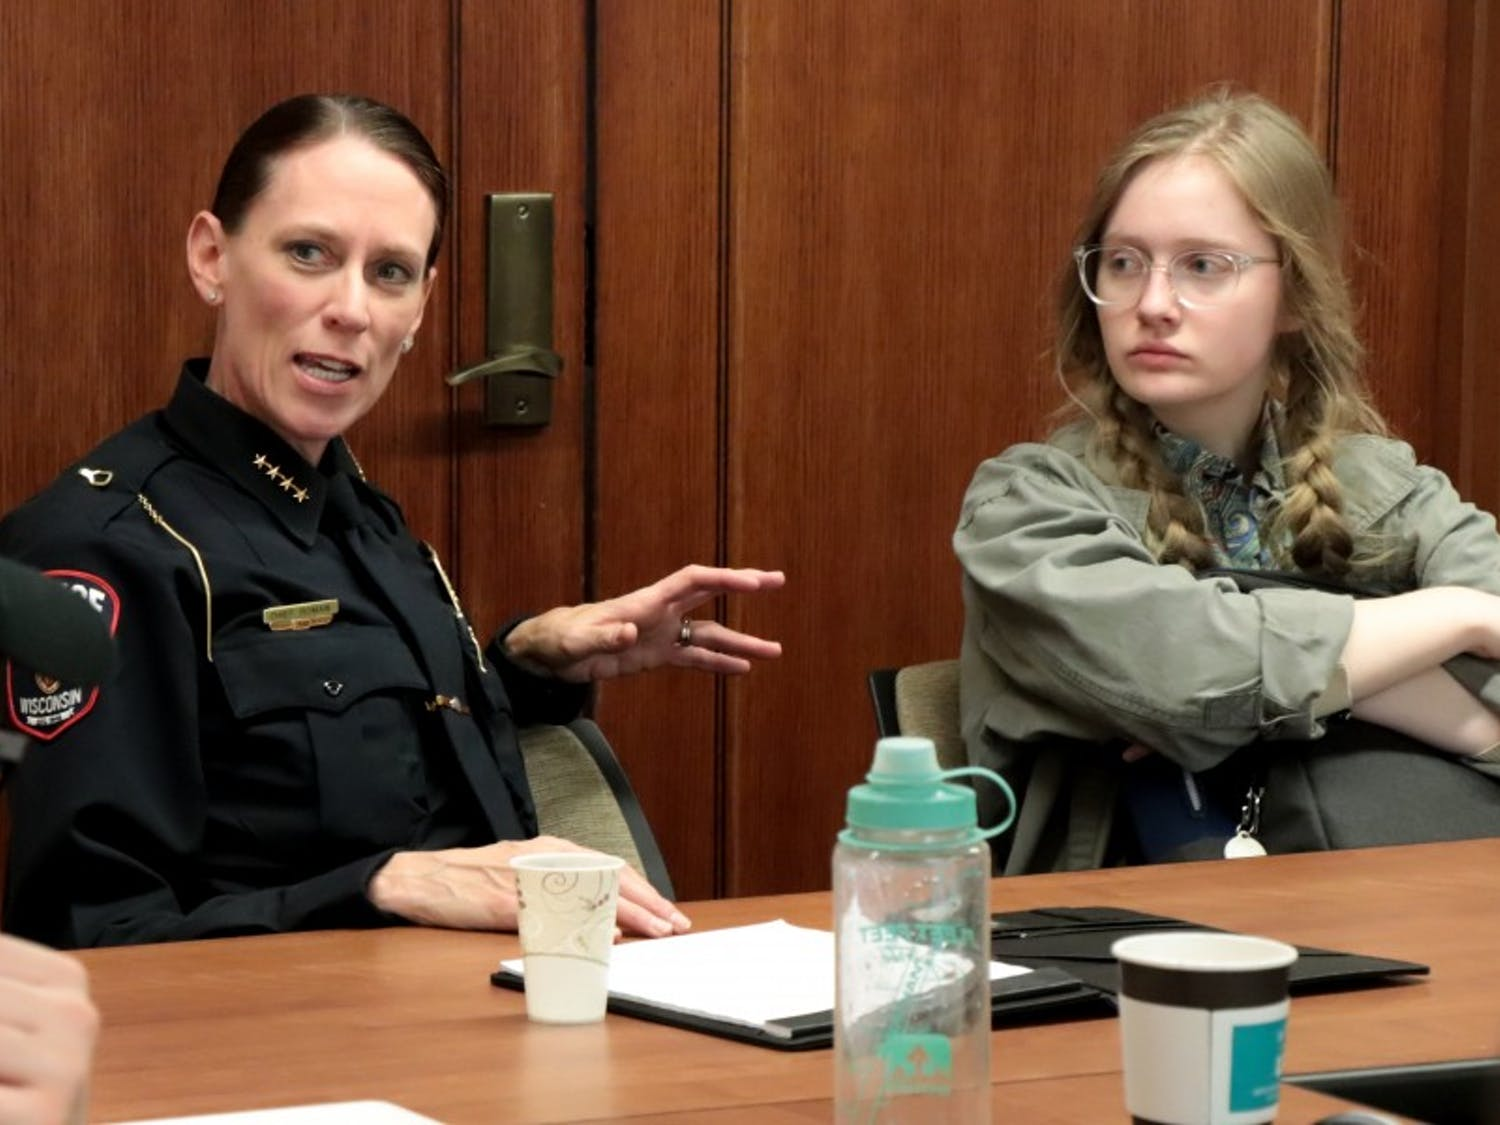 UW-Madison Police Department Chief of Police Kristen Roman discussed campus safety at a talk at Memorial Union.